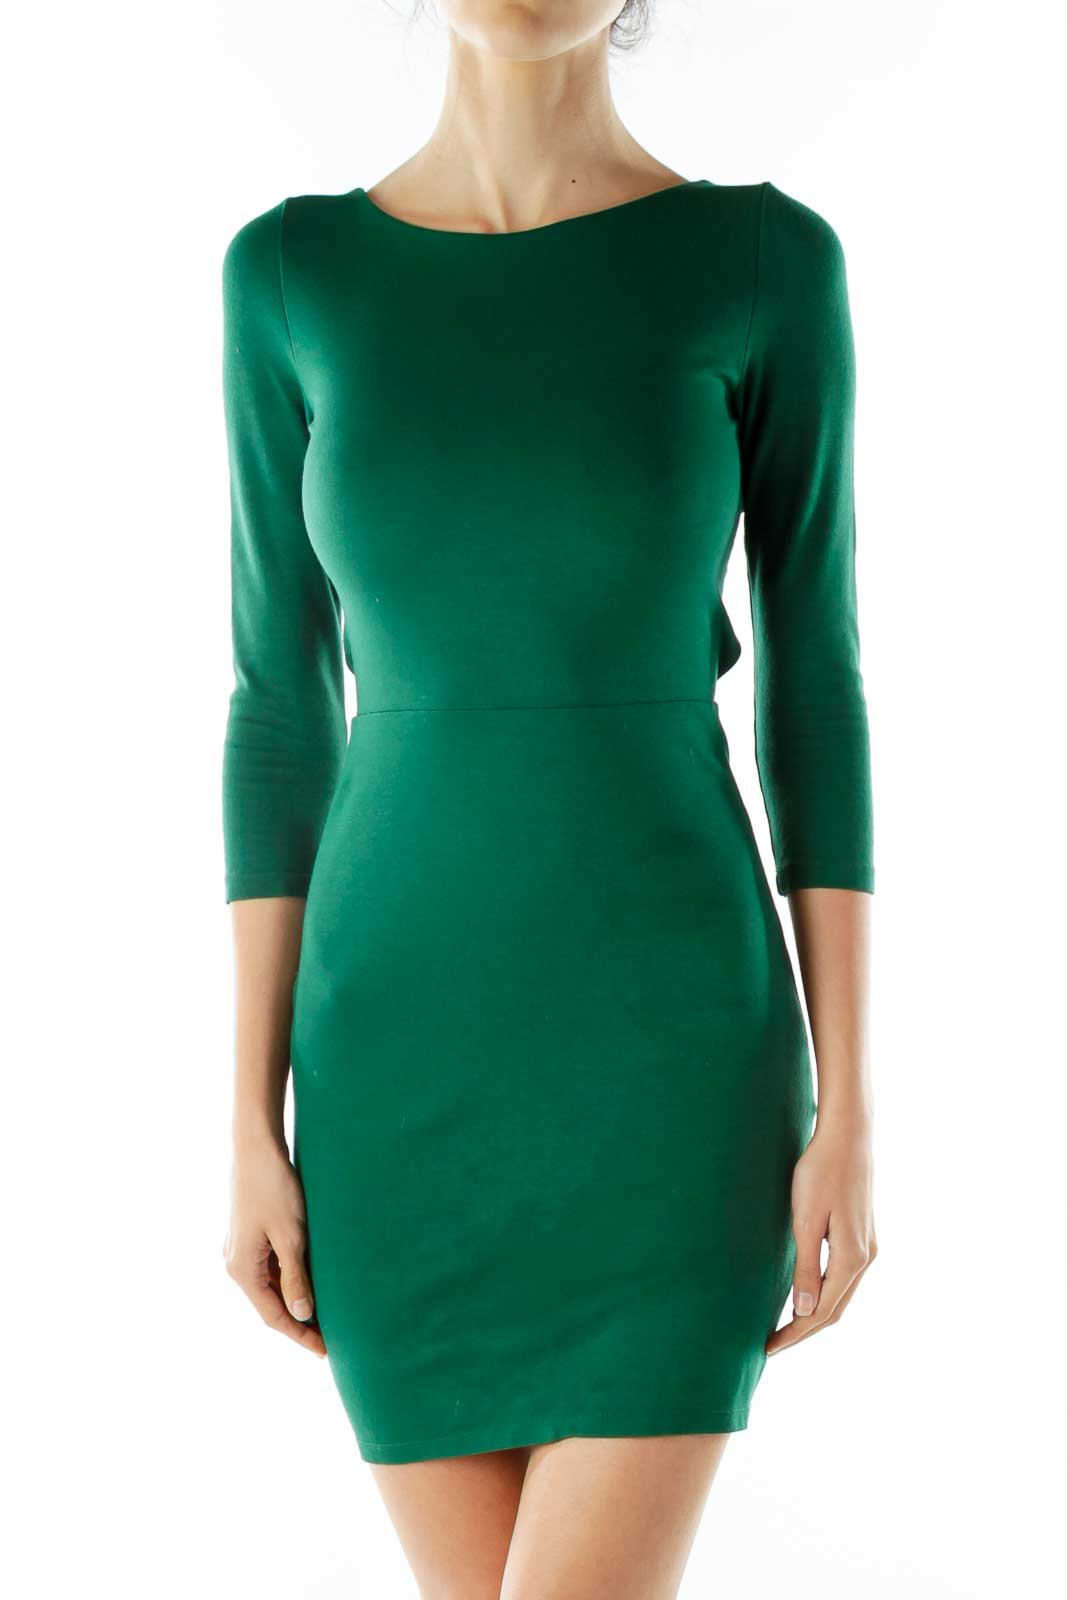 Green Cut-Out Dress